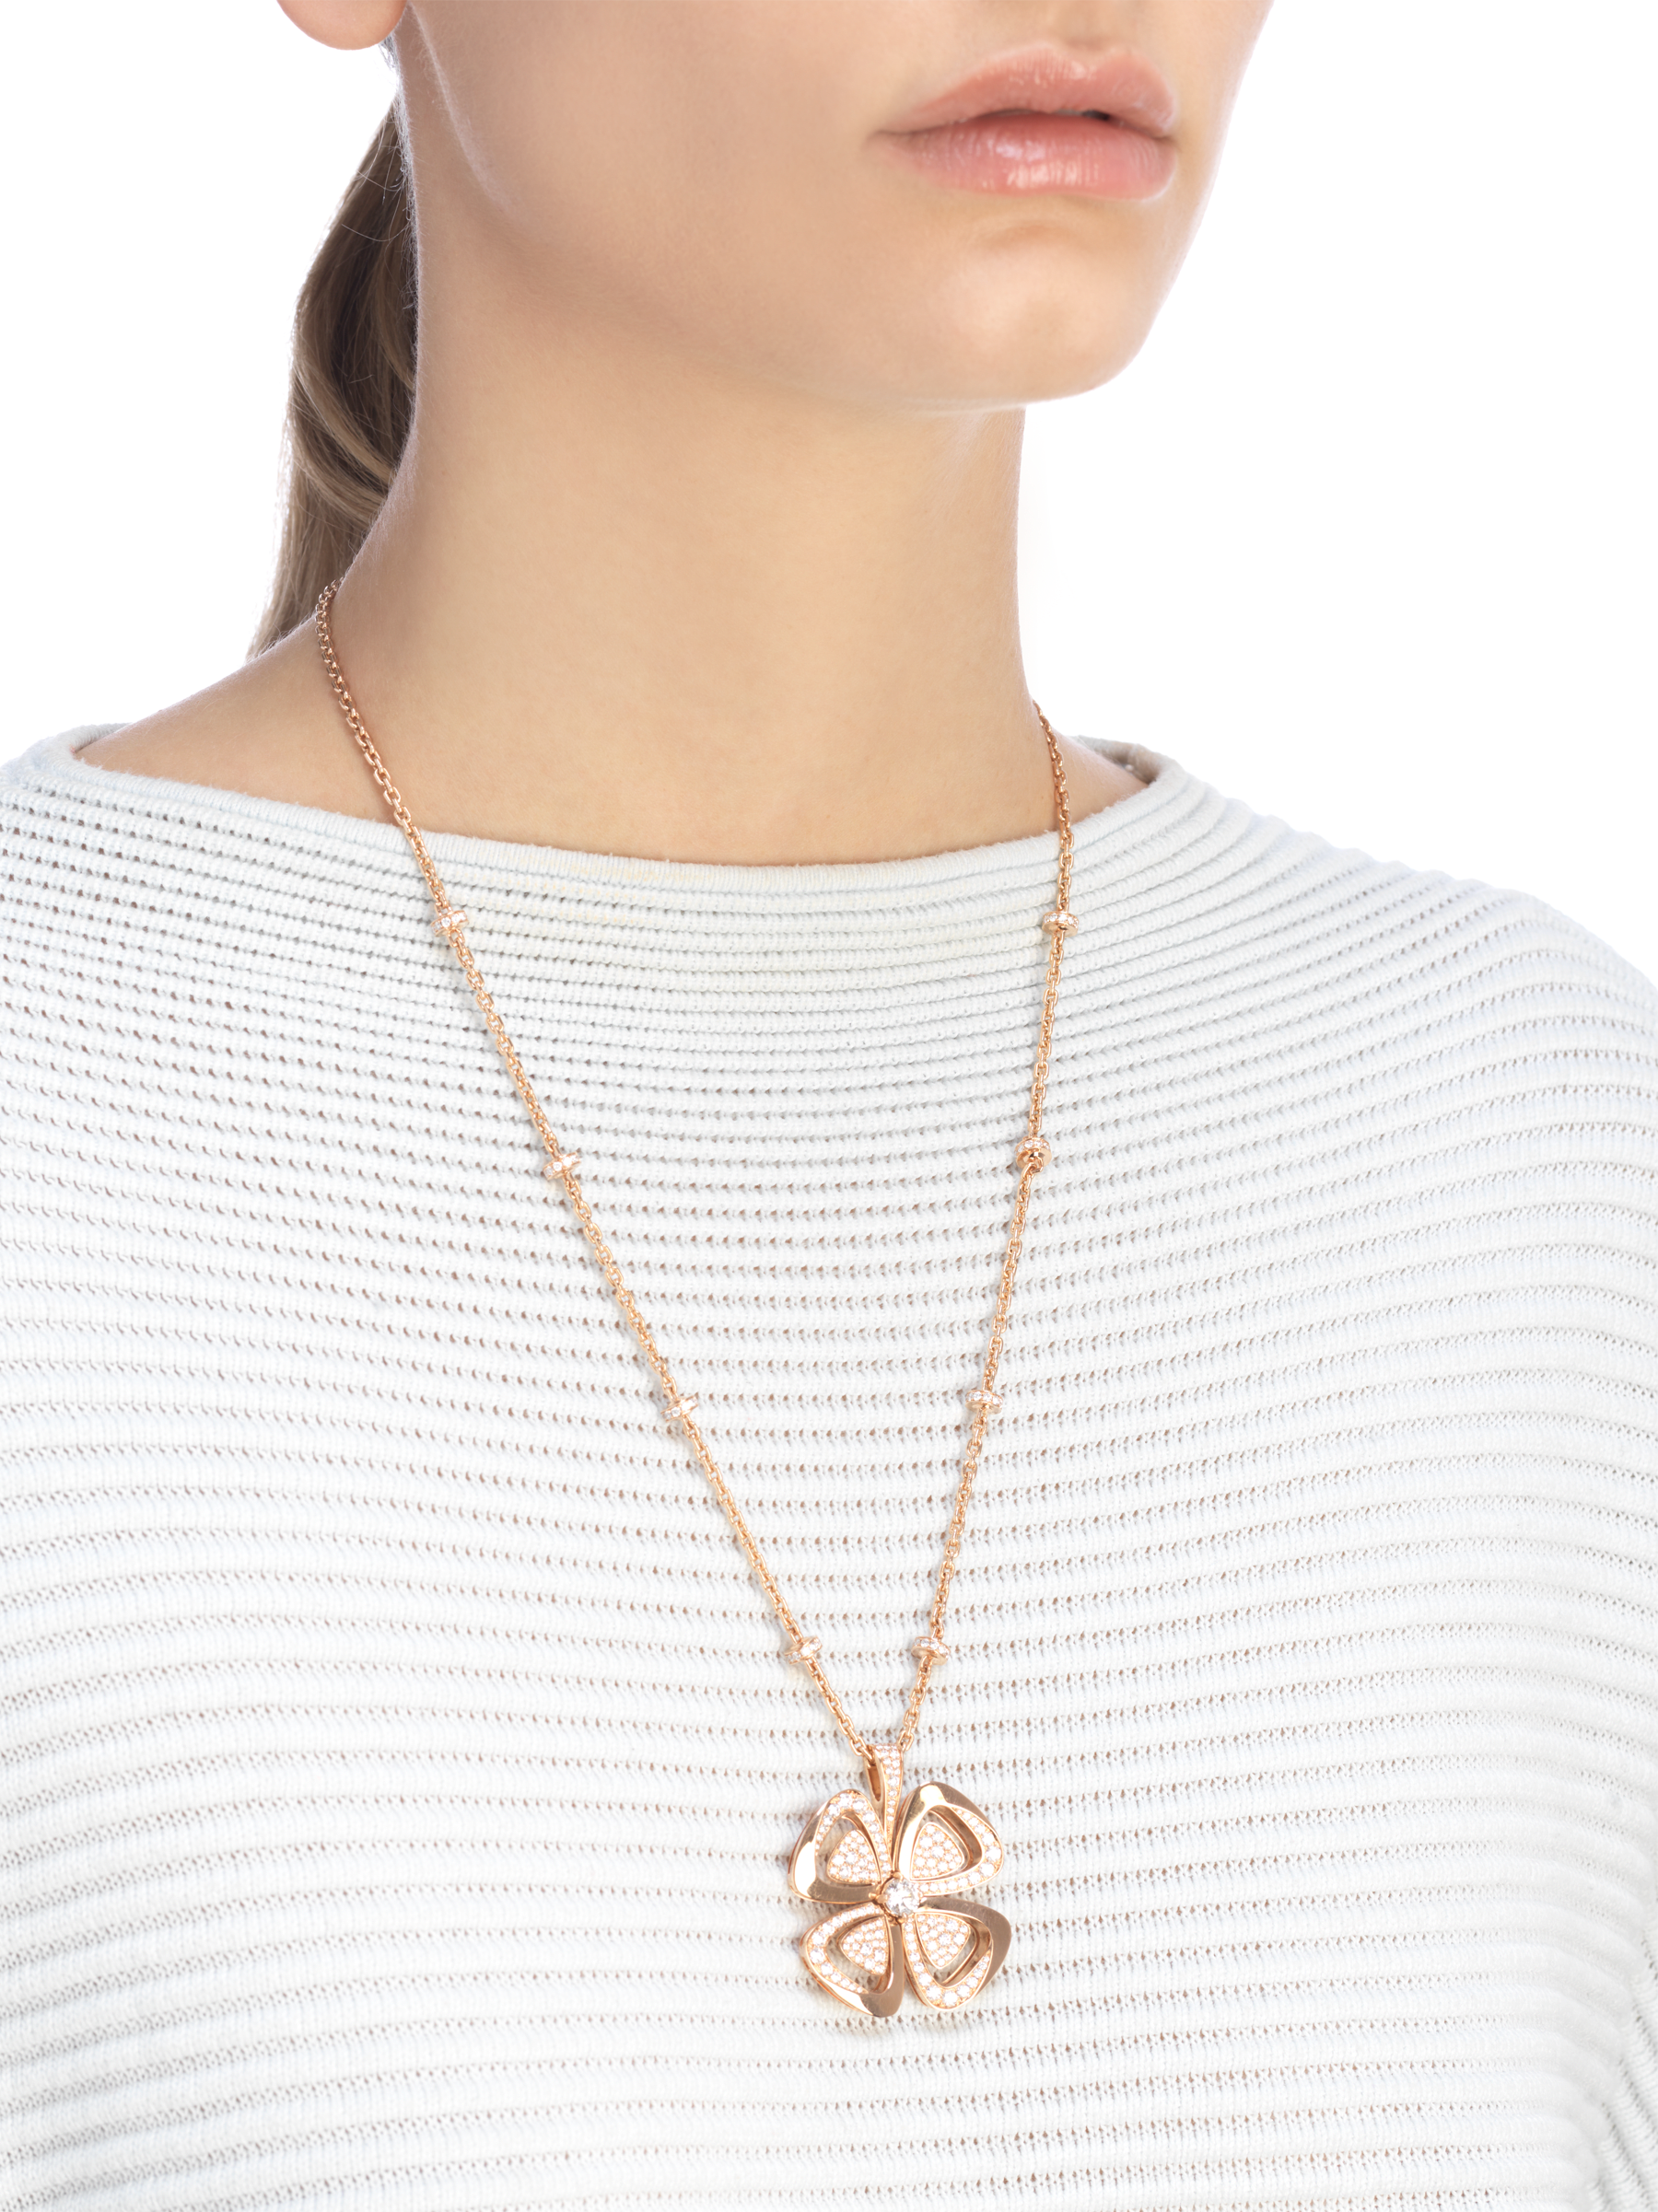 Fiorever 18 kt rose gold necklace set with a central round brilliant-cut diamond and pavé diamonds. 357218 image 4